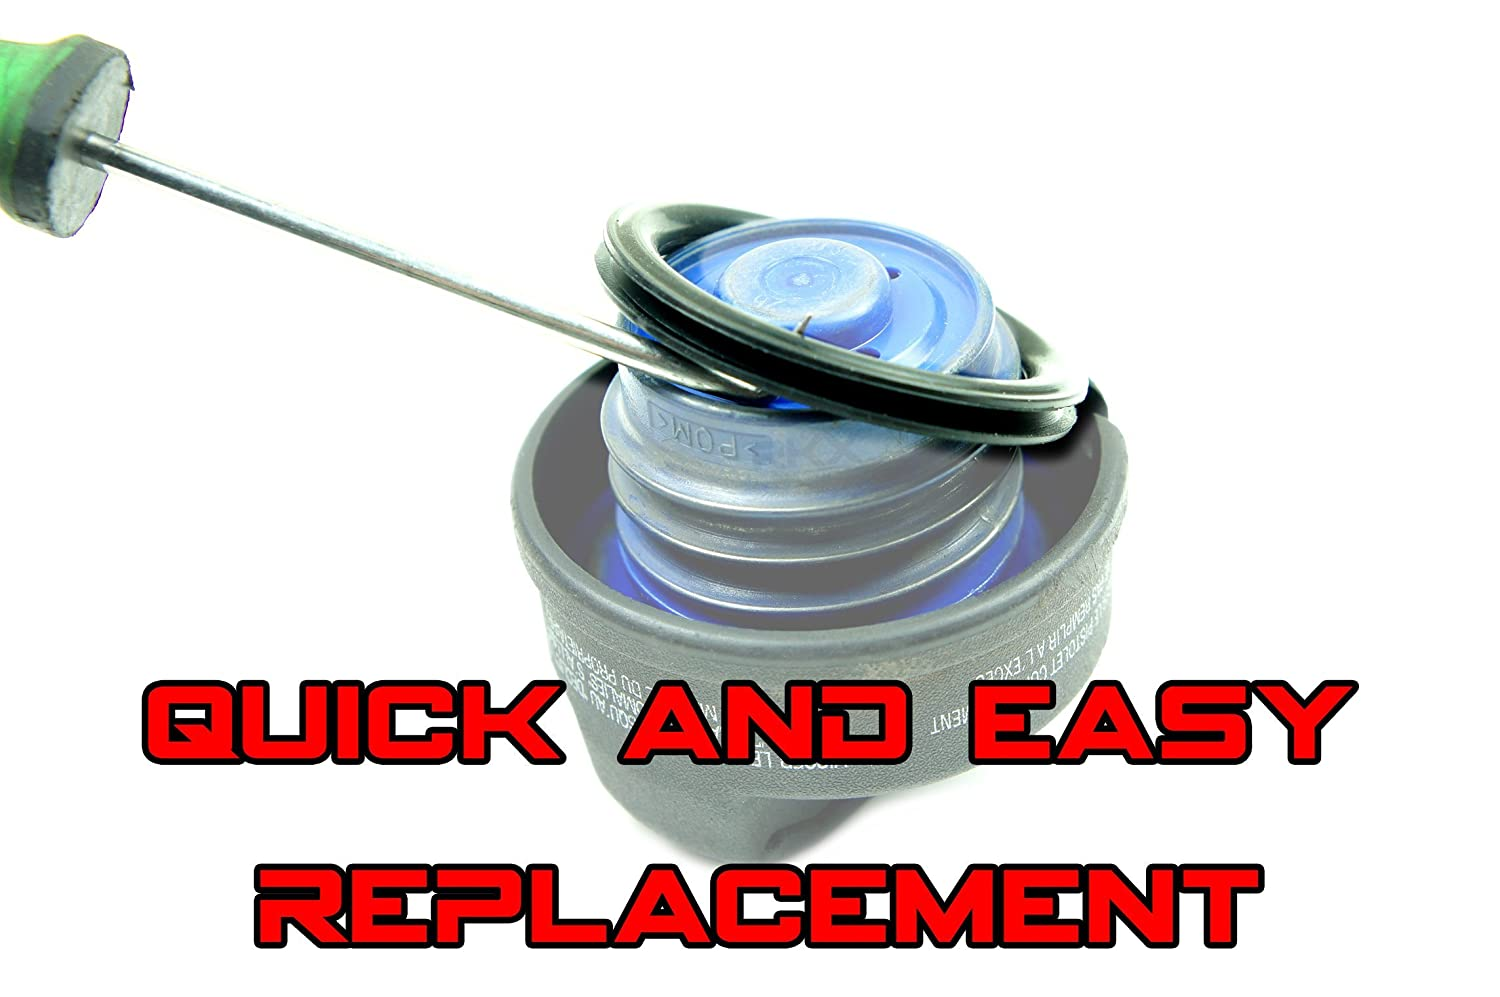 RKX Gas cap replacement seal Fuel for Volkswagen /& Audi VW mk4 mk5 mk6 B5 b6 b7 b8 petrol